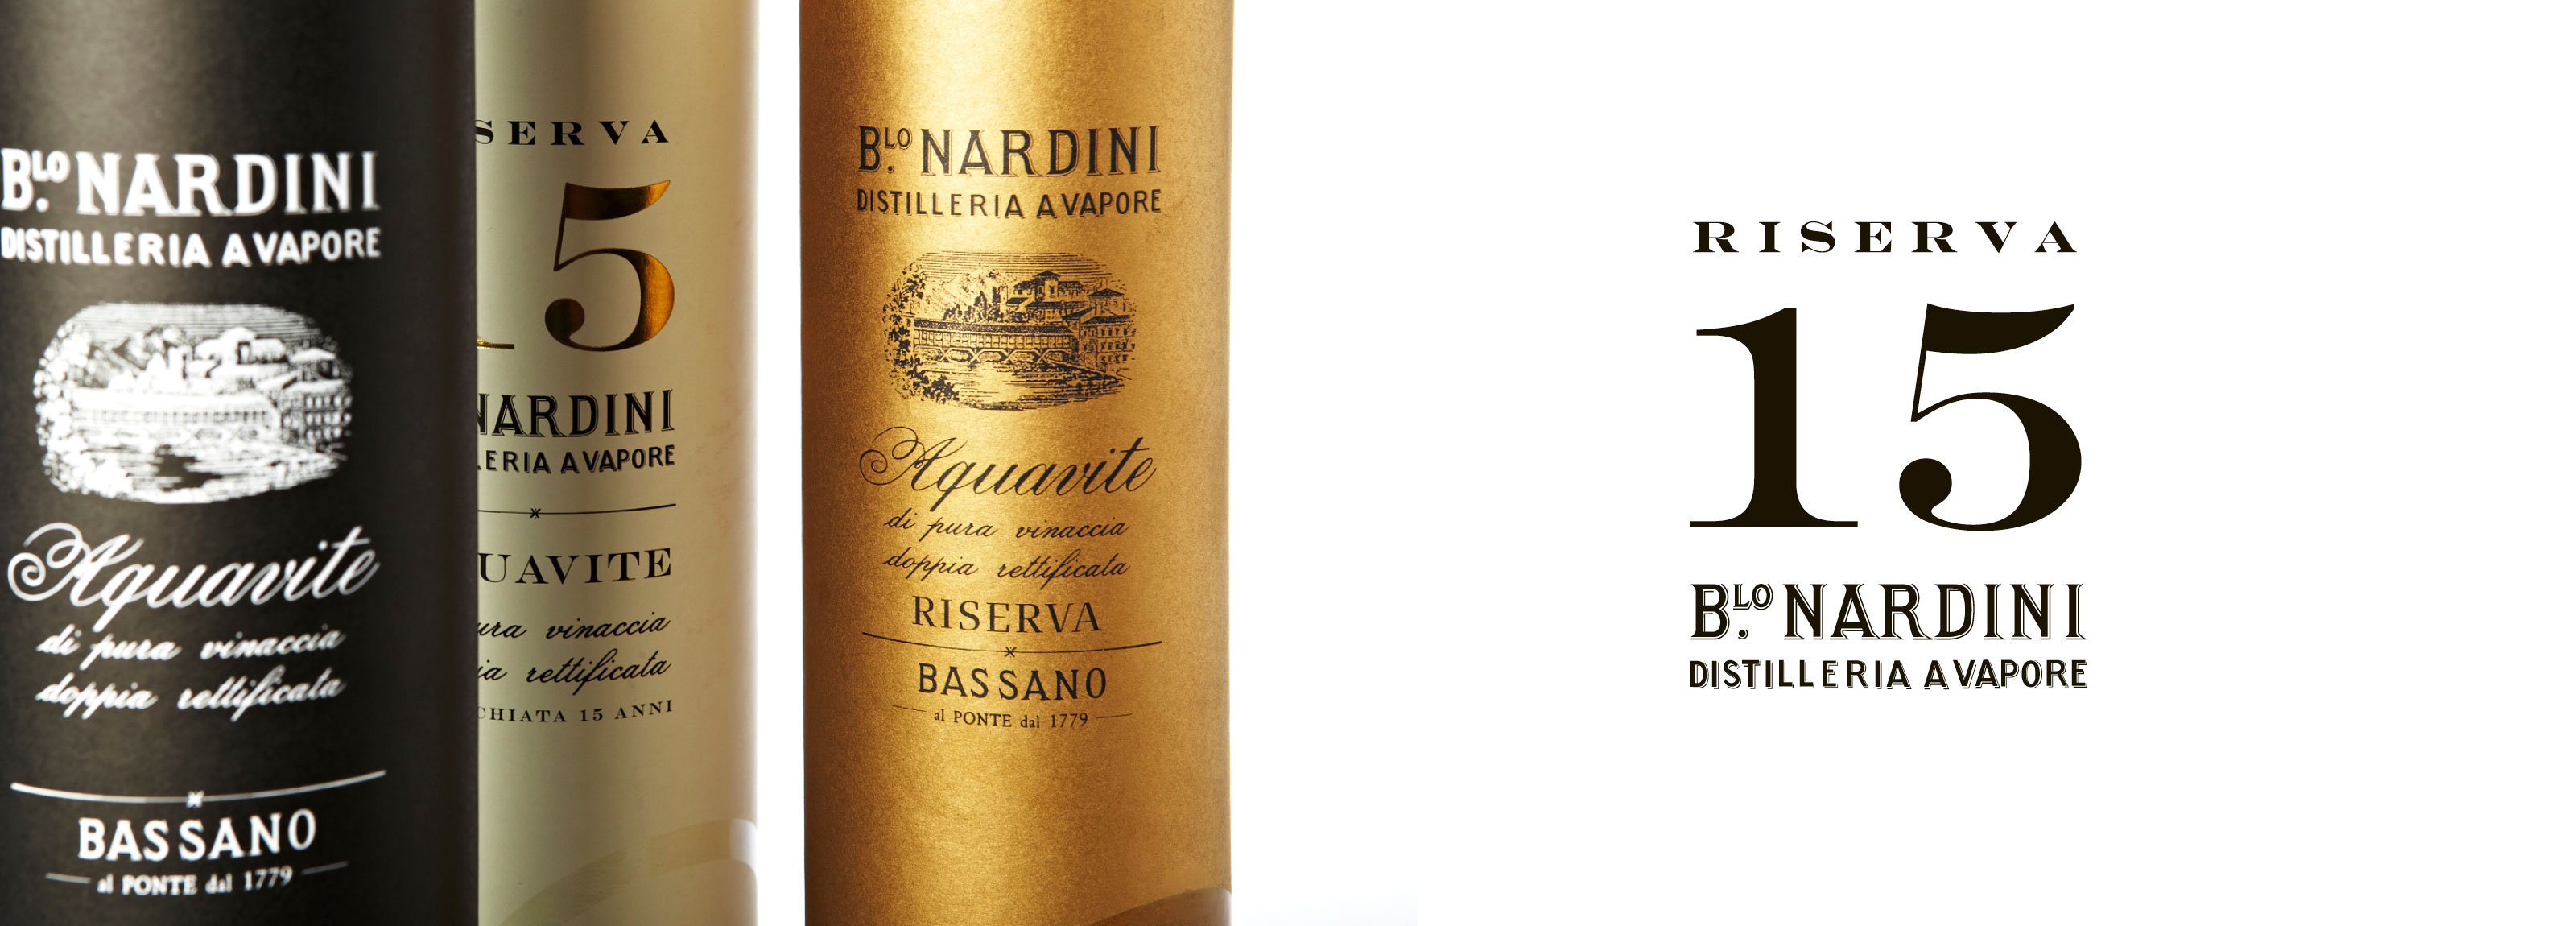 Hangar Design Group signed the new gift boxes for Distilleria Nardini